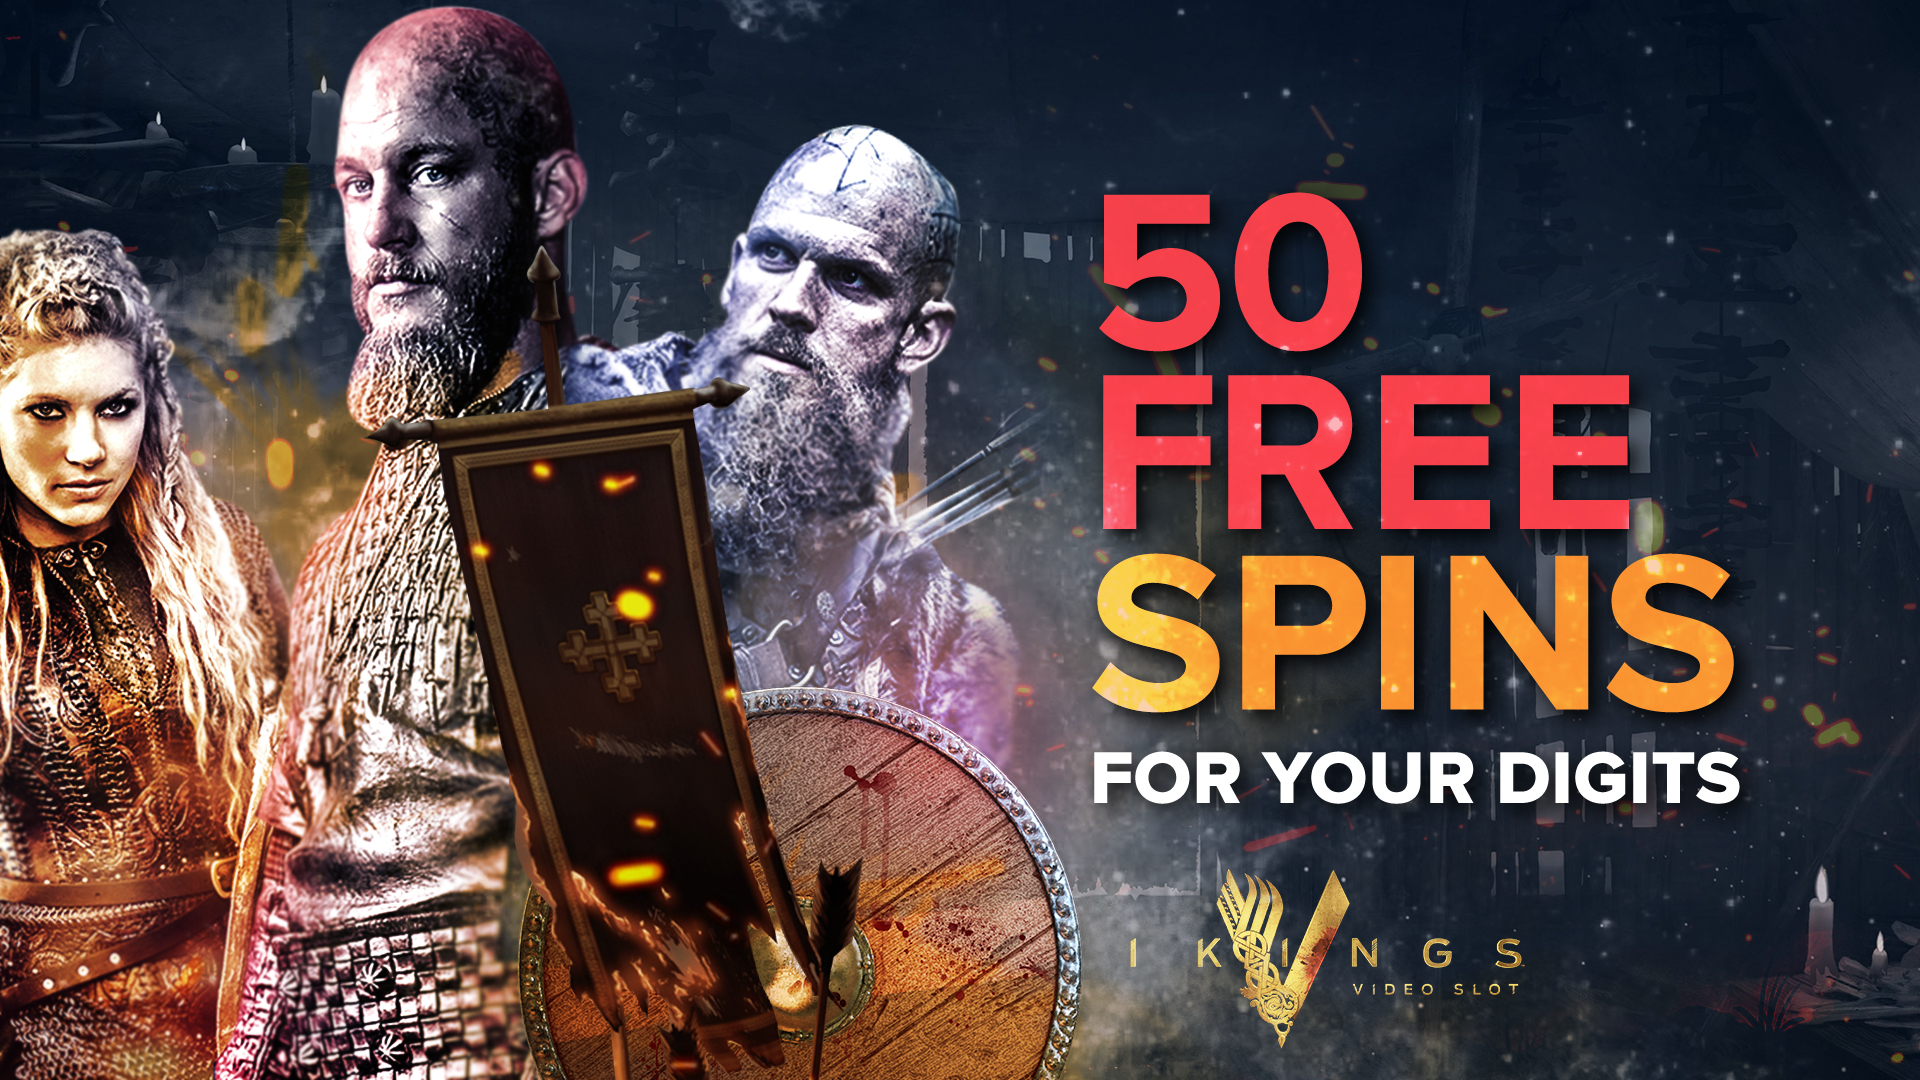 Get 50 Free Spins for phone number verification at mBitcasino